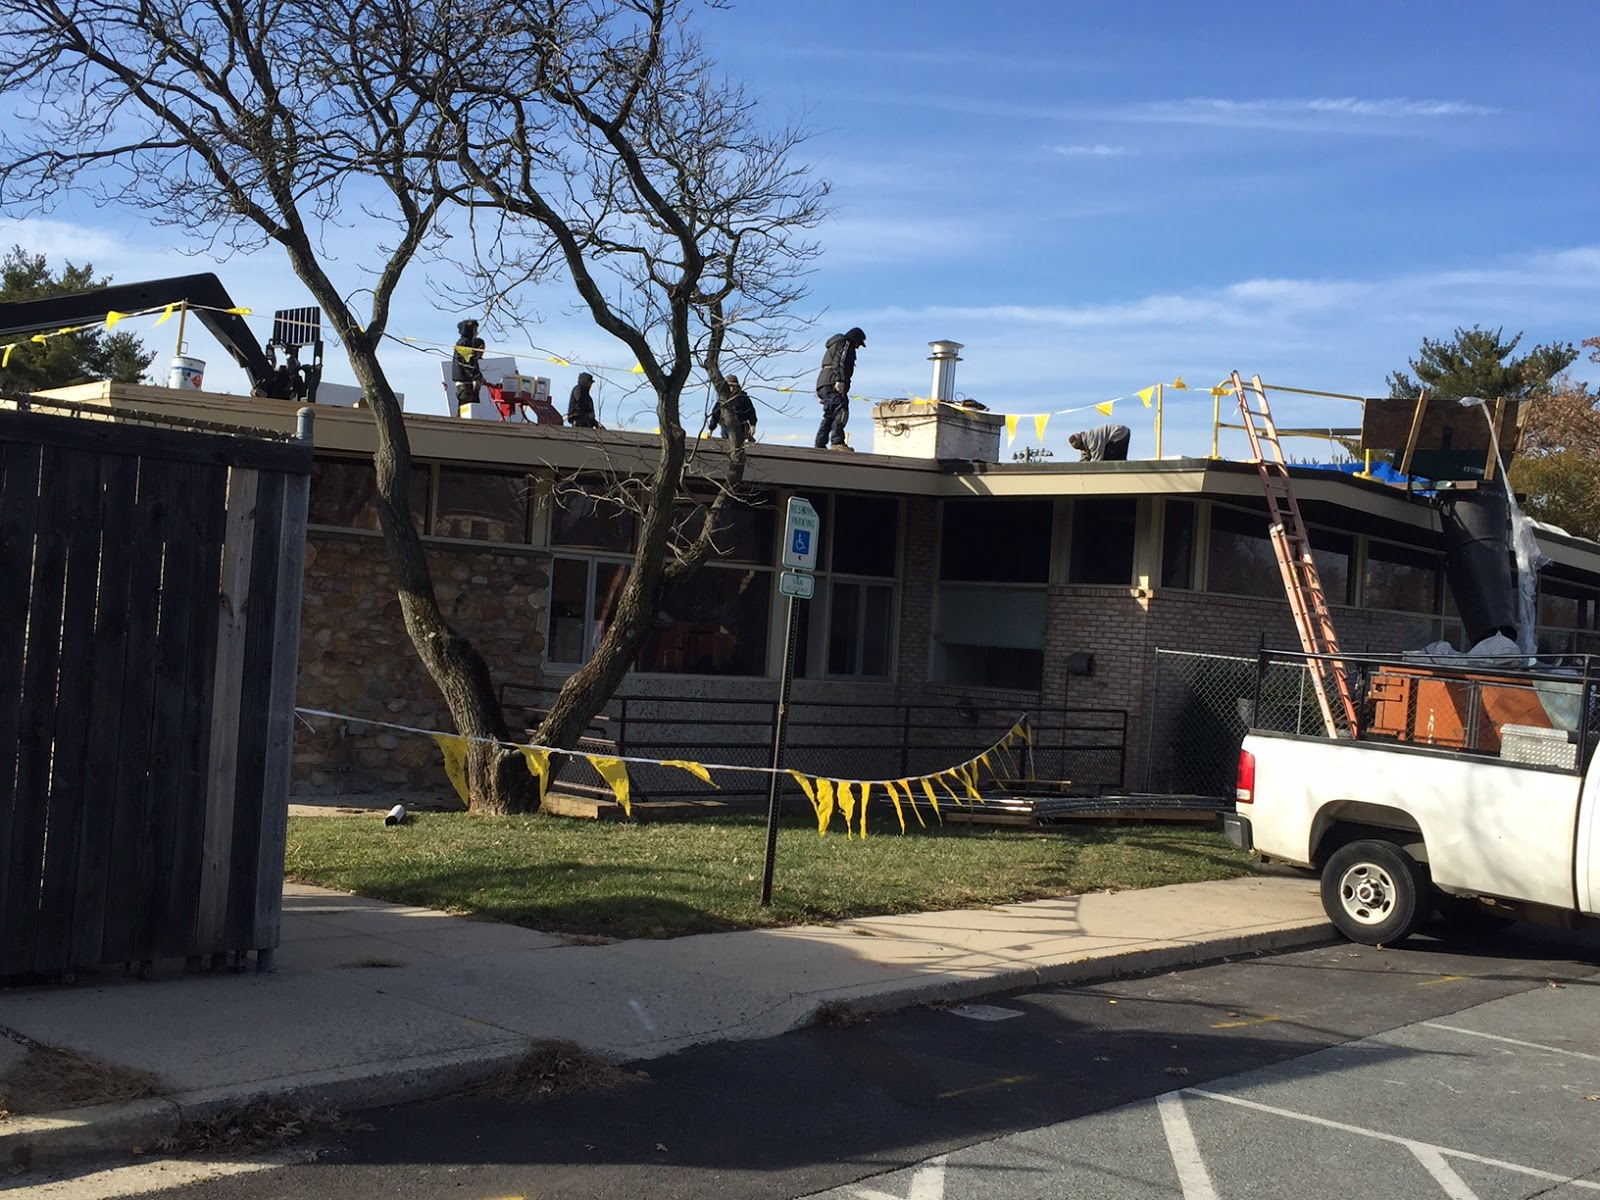 Workers On Davis Roof. Roofing Work.